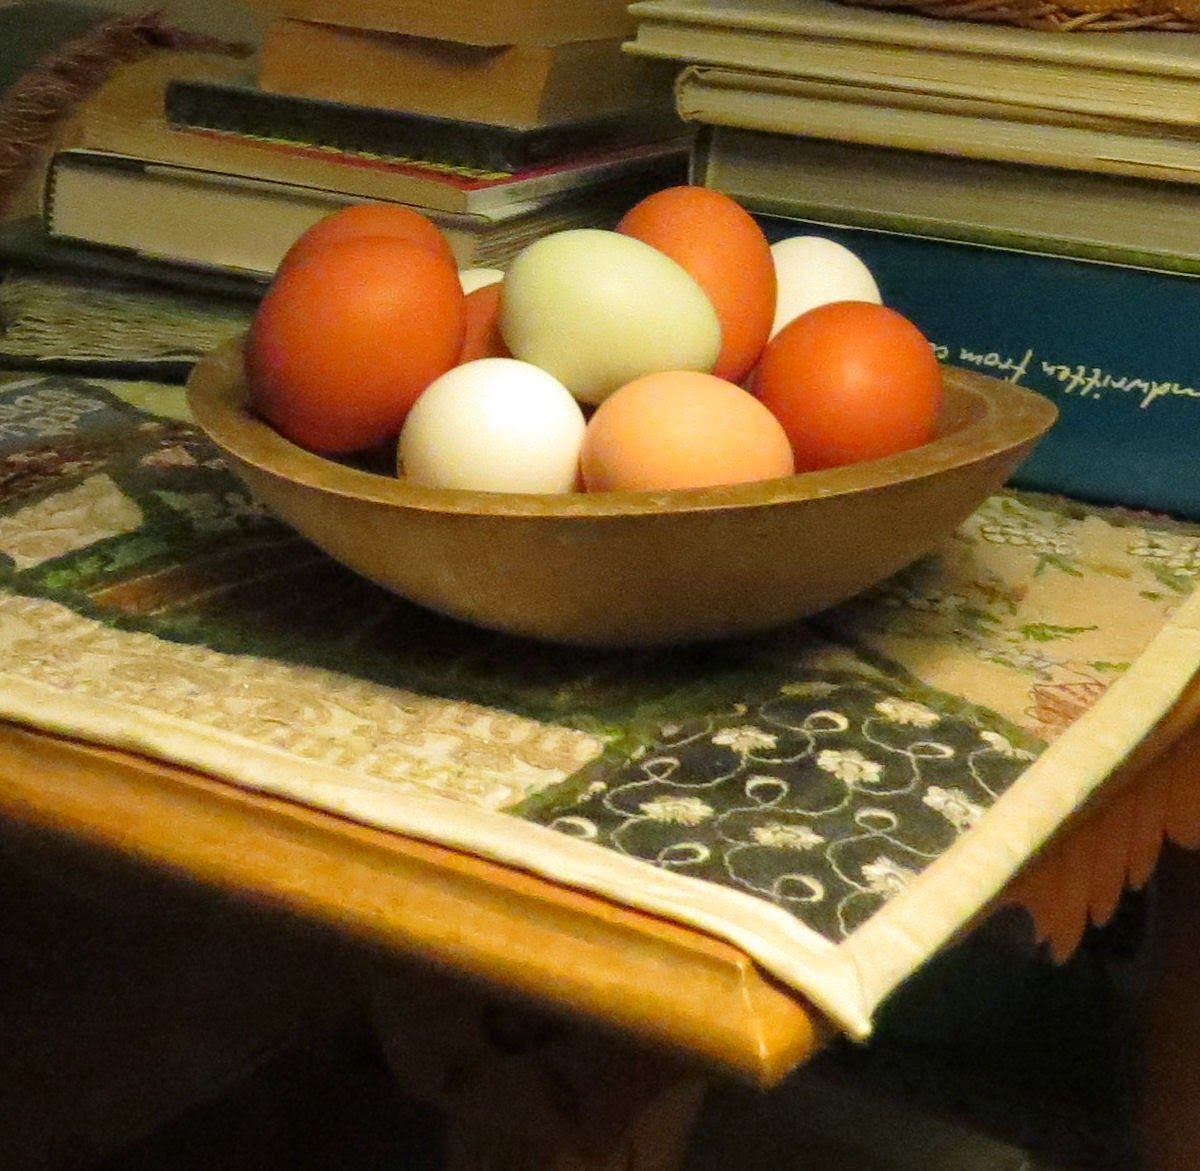 eggs in a wooden bowl